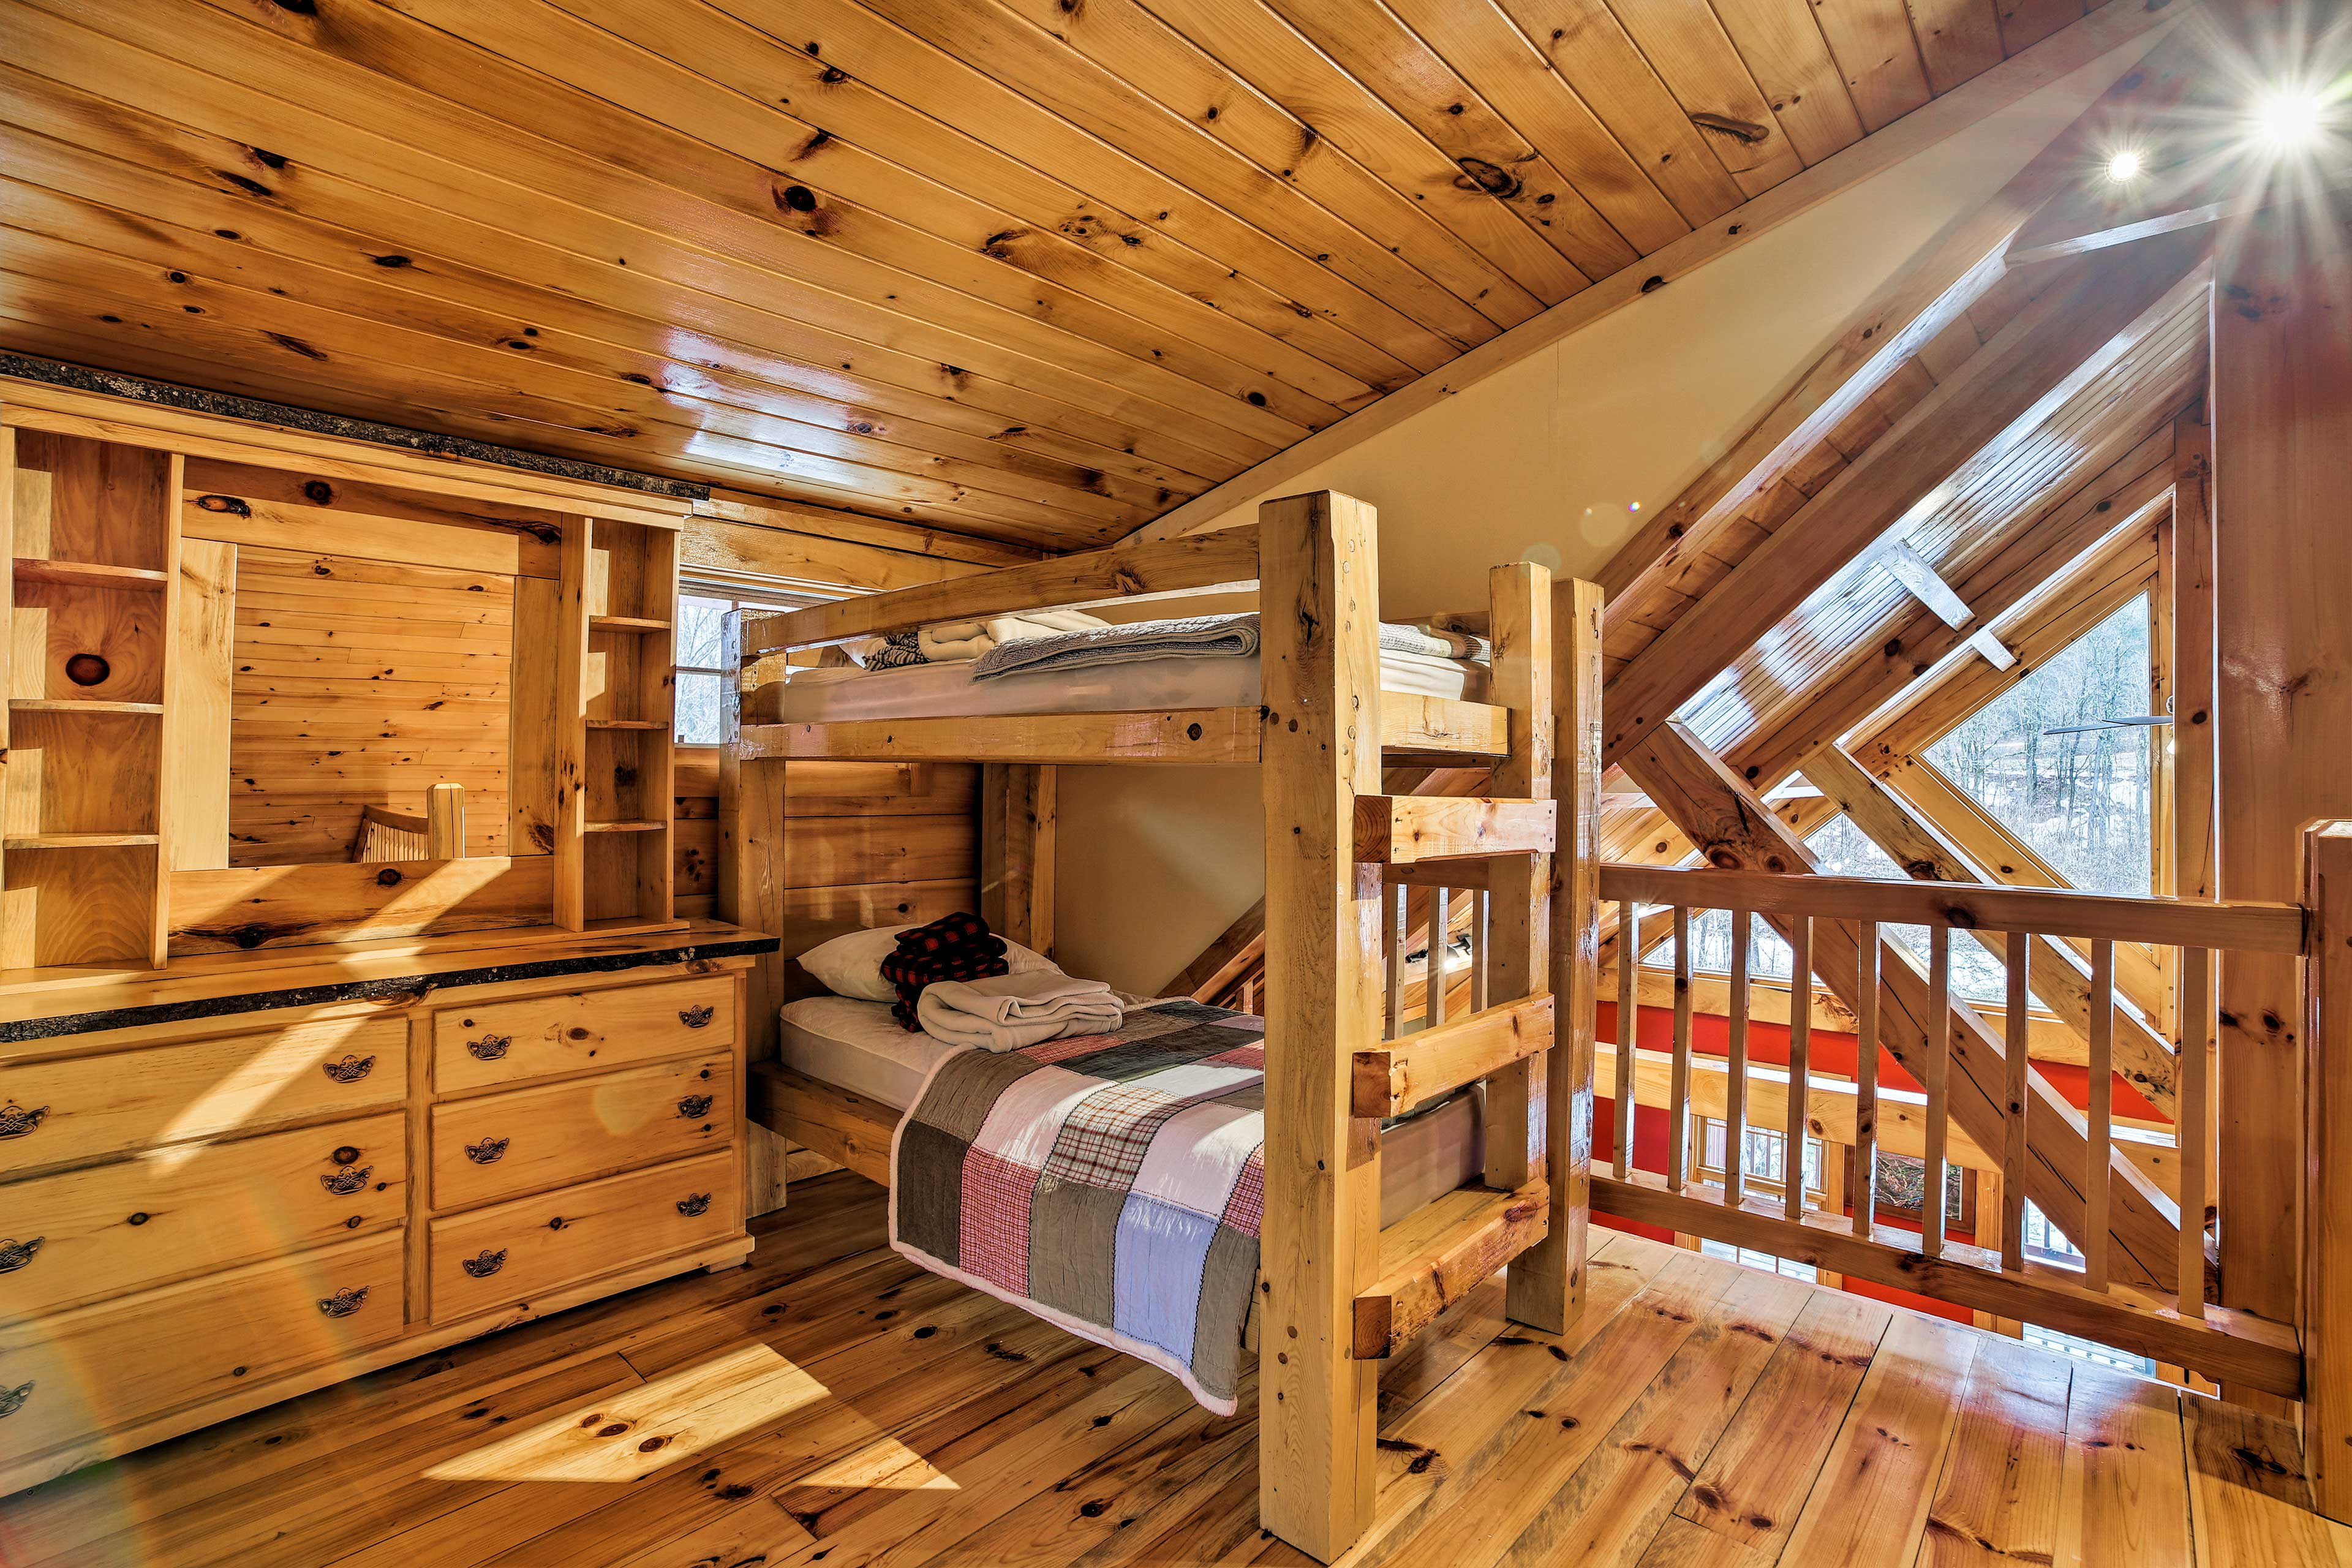 Kids will love the bunk beds.